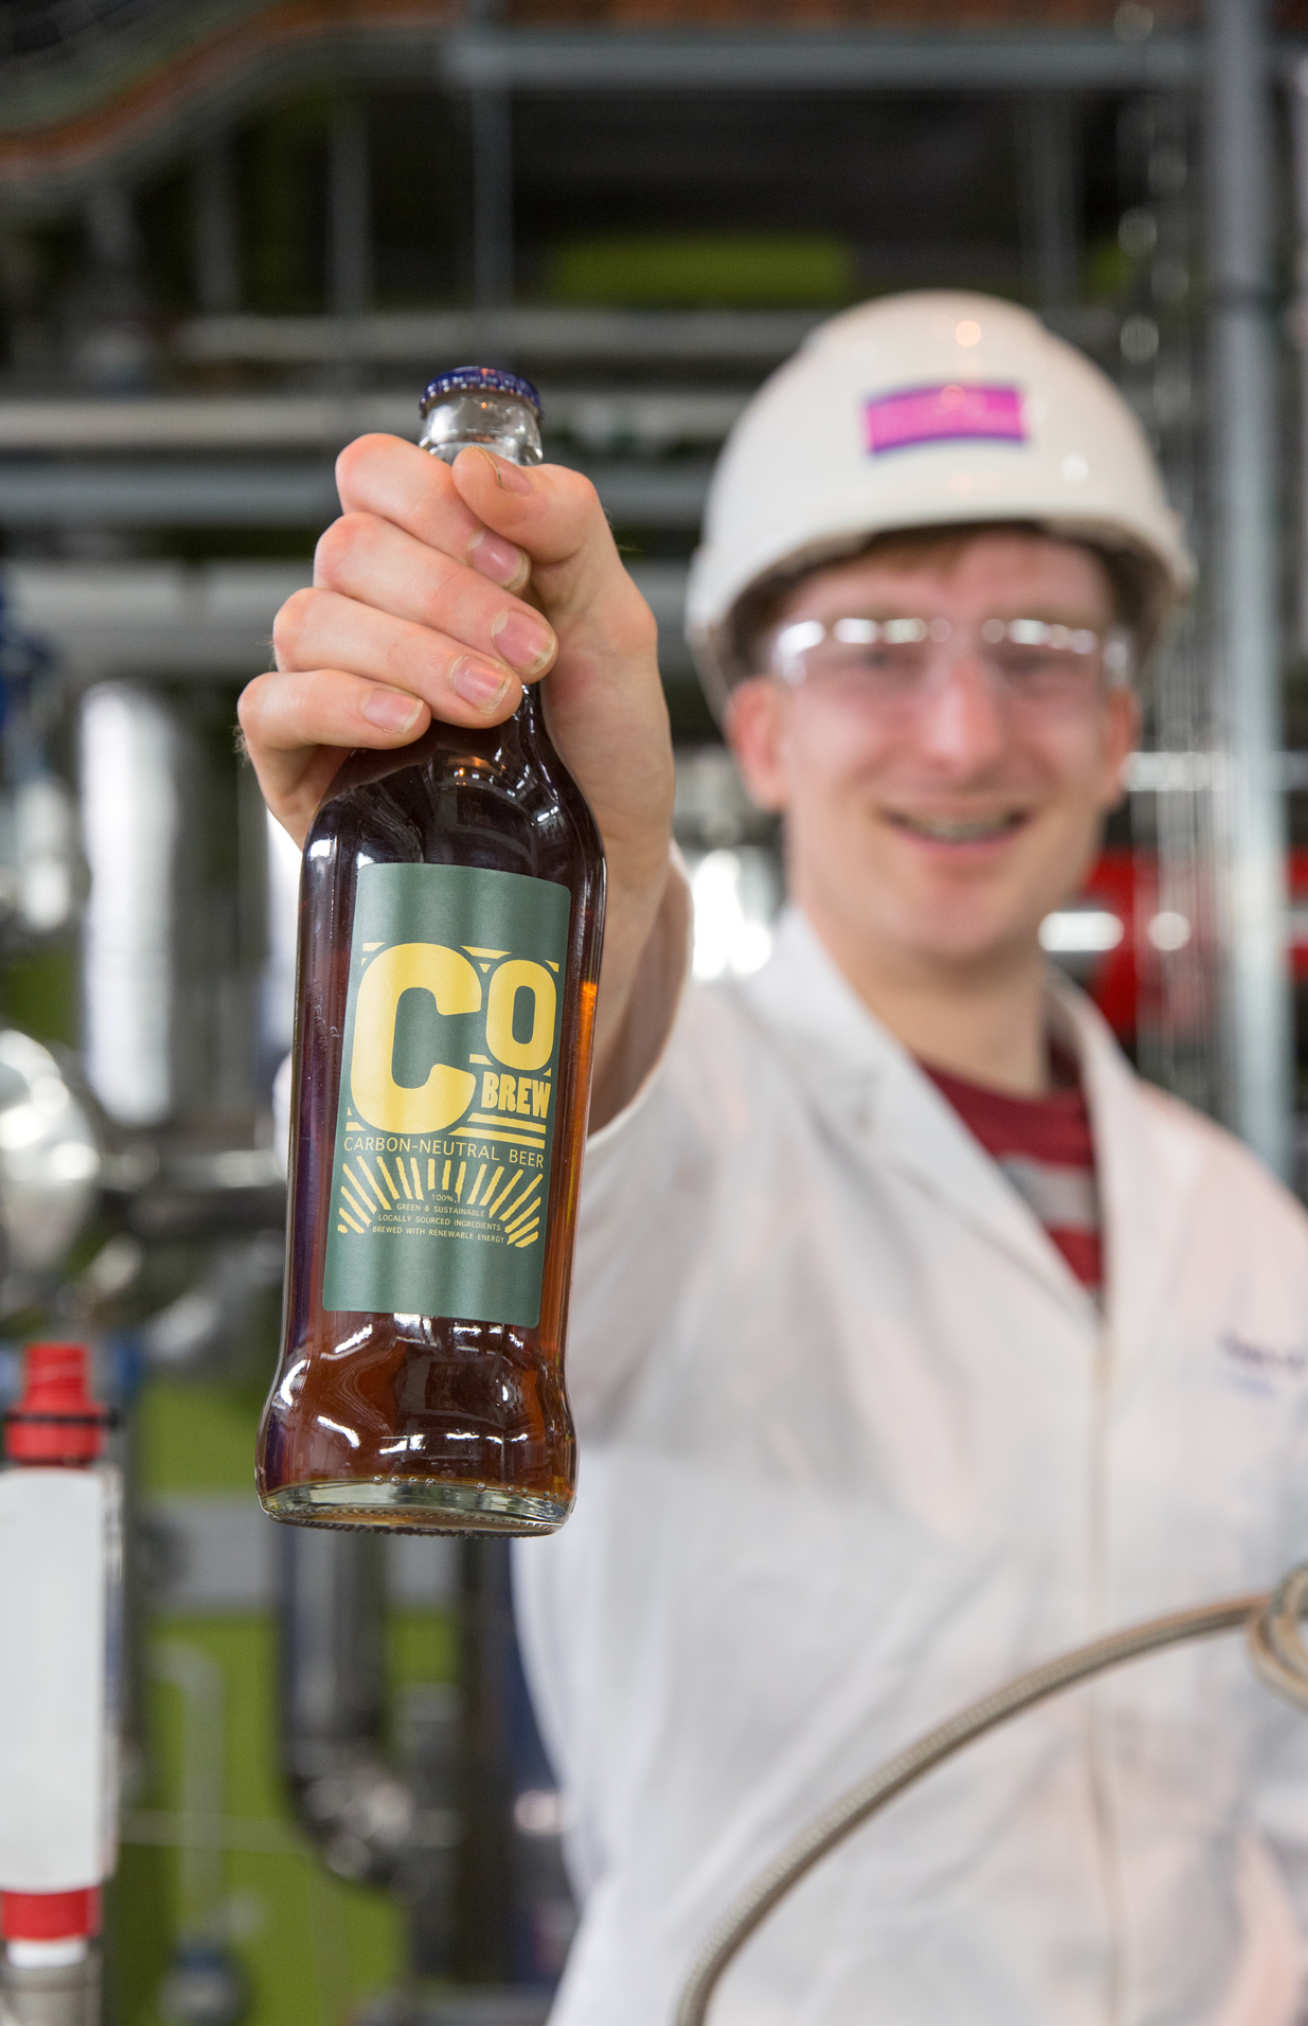 Matt Barker holds a bottle of the CObrew beer in the Carbon Capture Pilot Plant